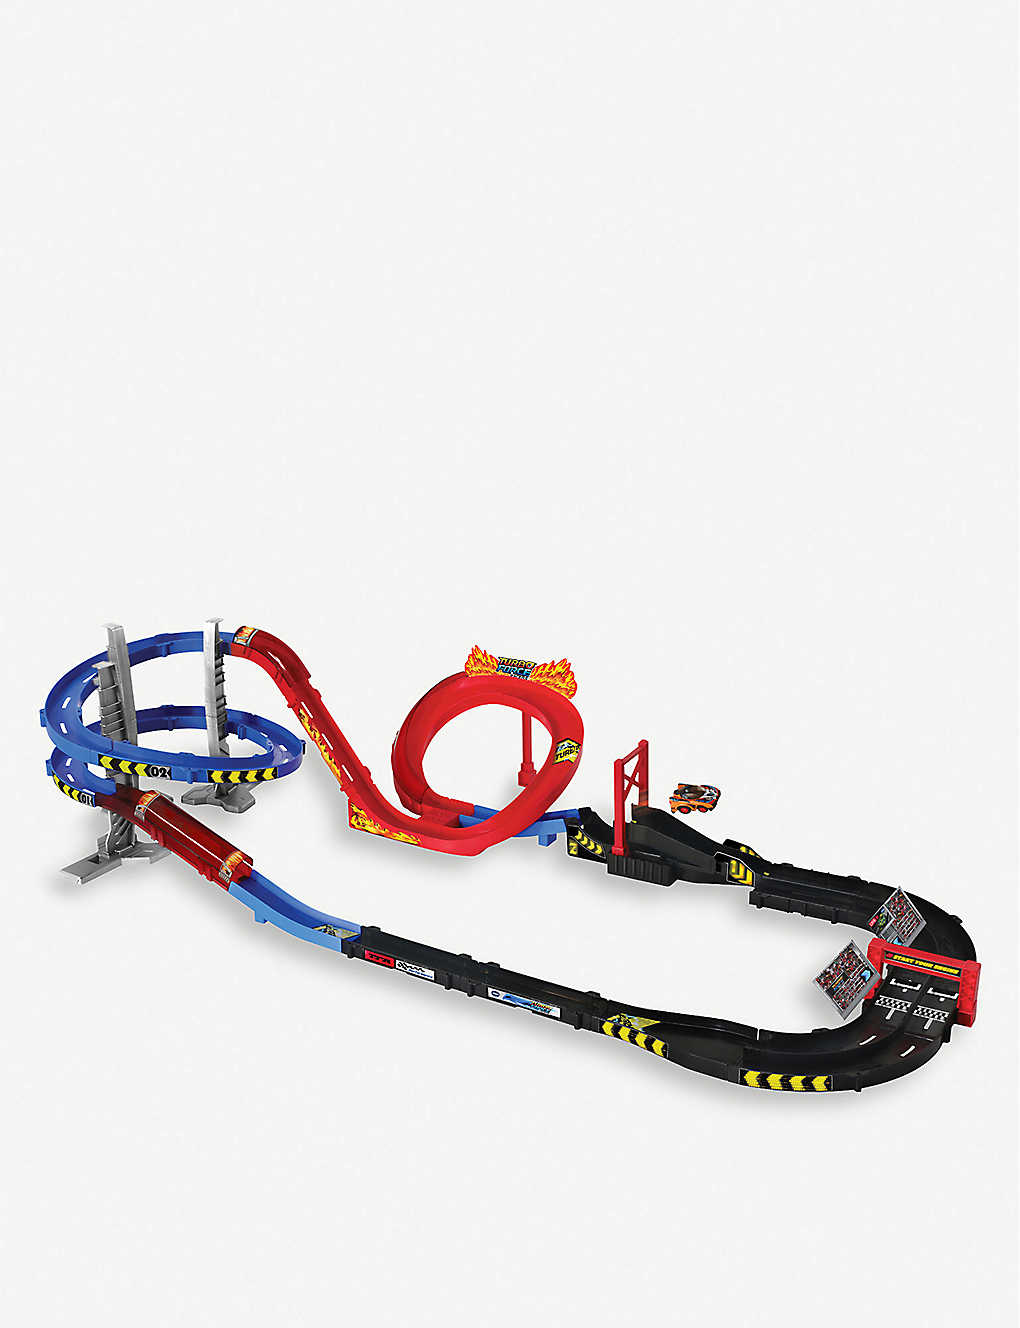 VTECH: Turbo force racetrack